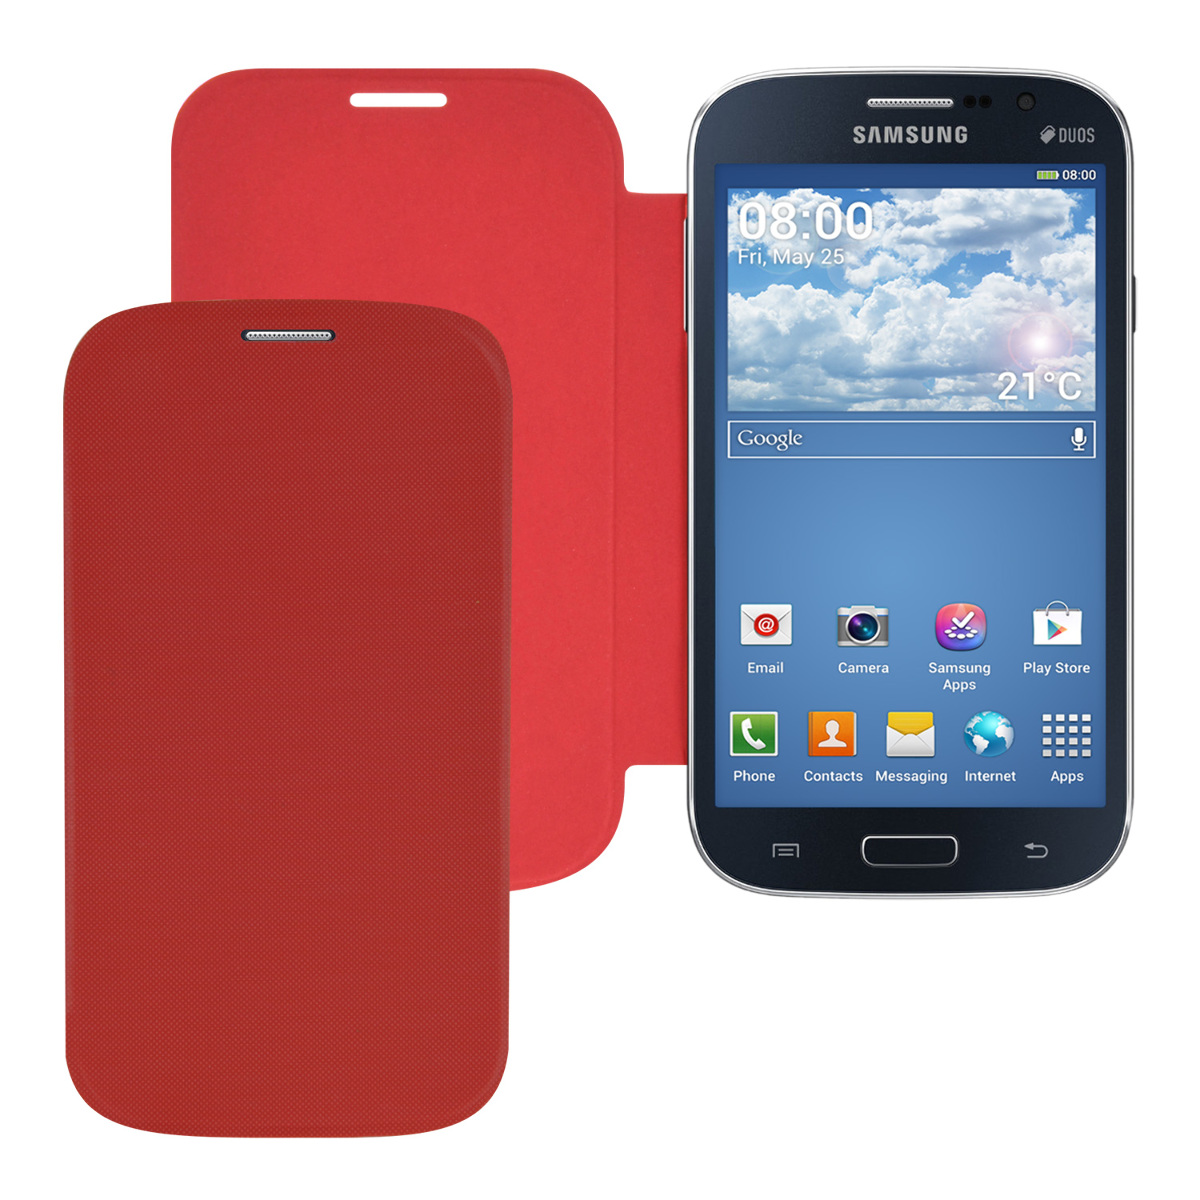 kwmobile-ETUI-DE-PROTECTION-POUR-SAMSUNG-GALAXY-GRAND-NEO-DUOS-A-RABAT-CHIC